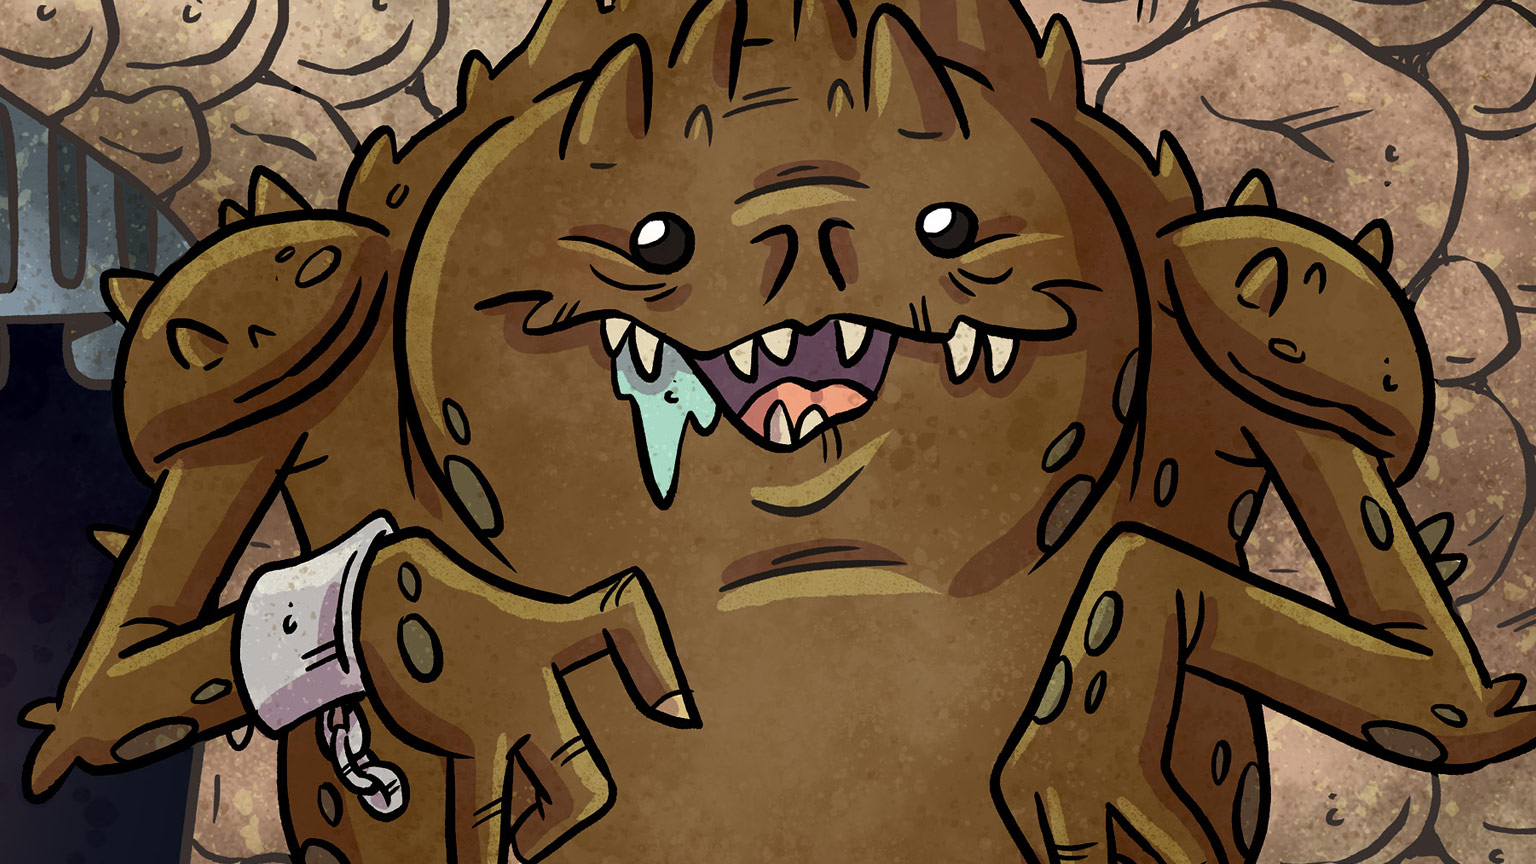 The rancor by Katie Cook from Star Wars: Creatures Big & Small